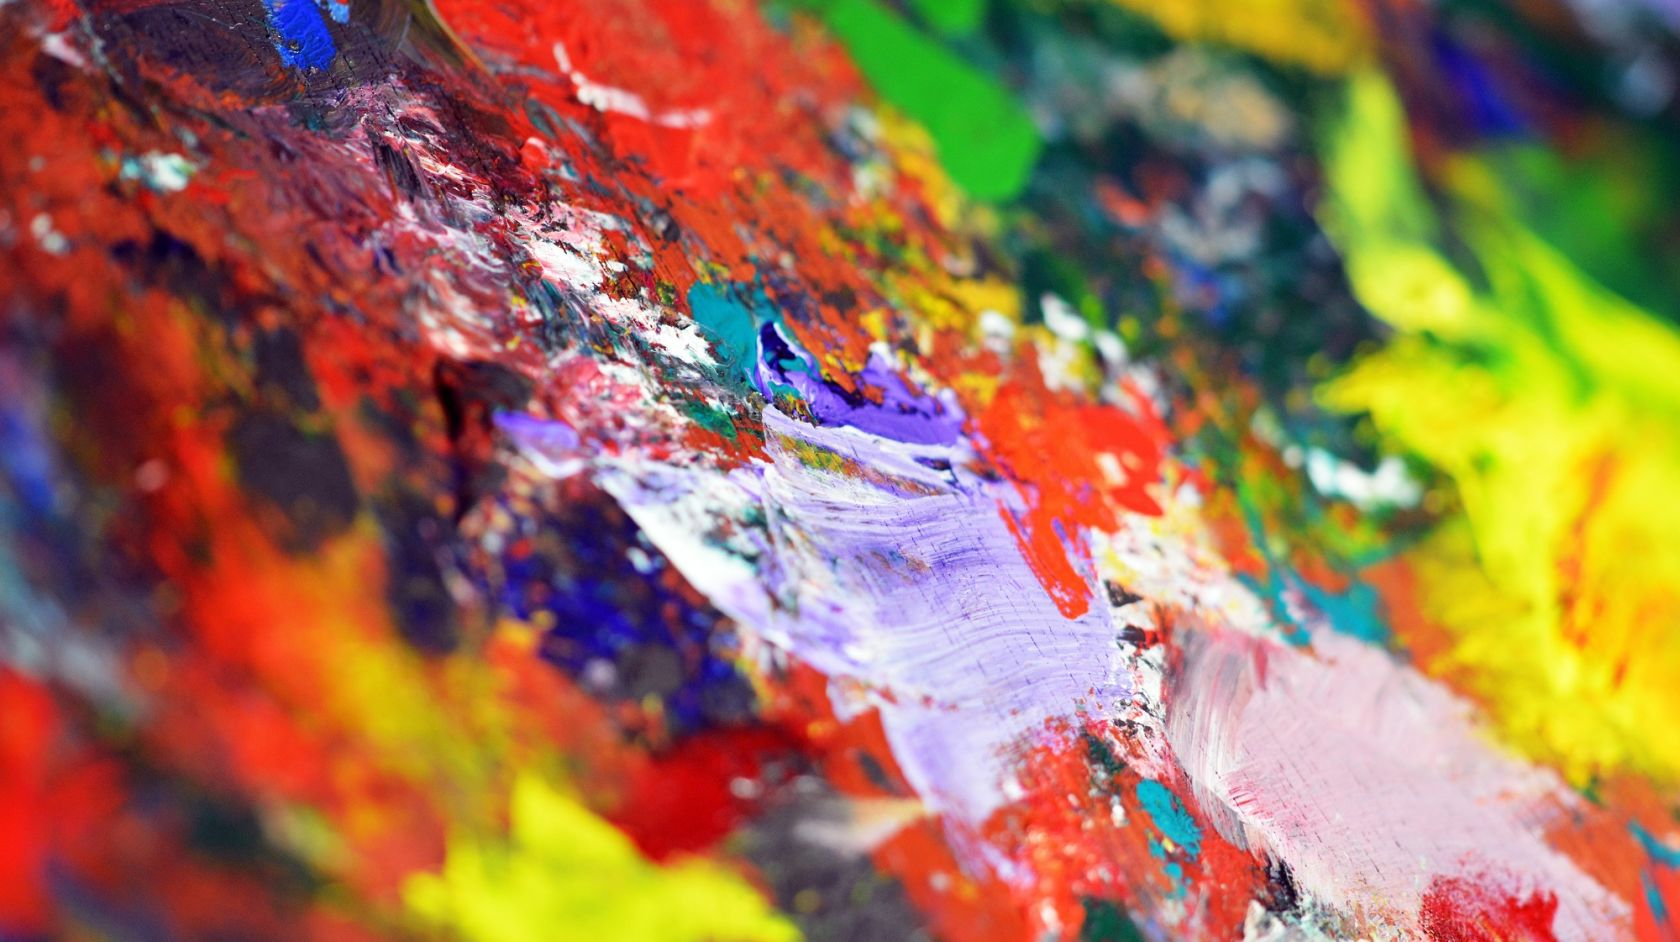 A Close Up Of A Colorful Background